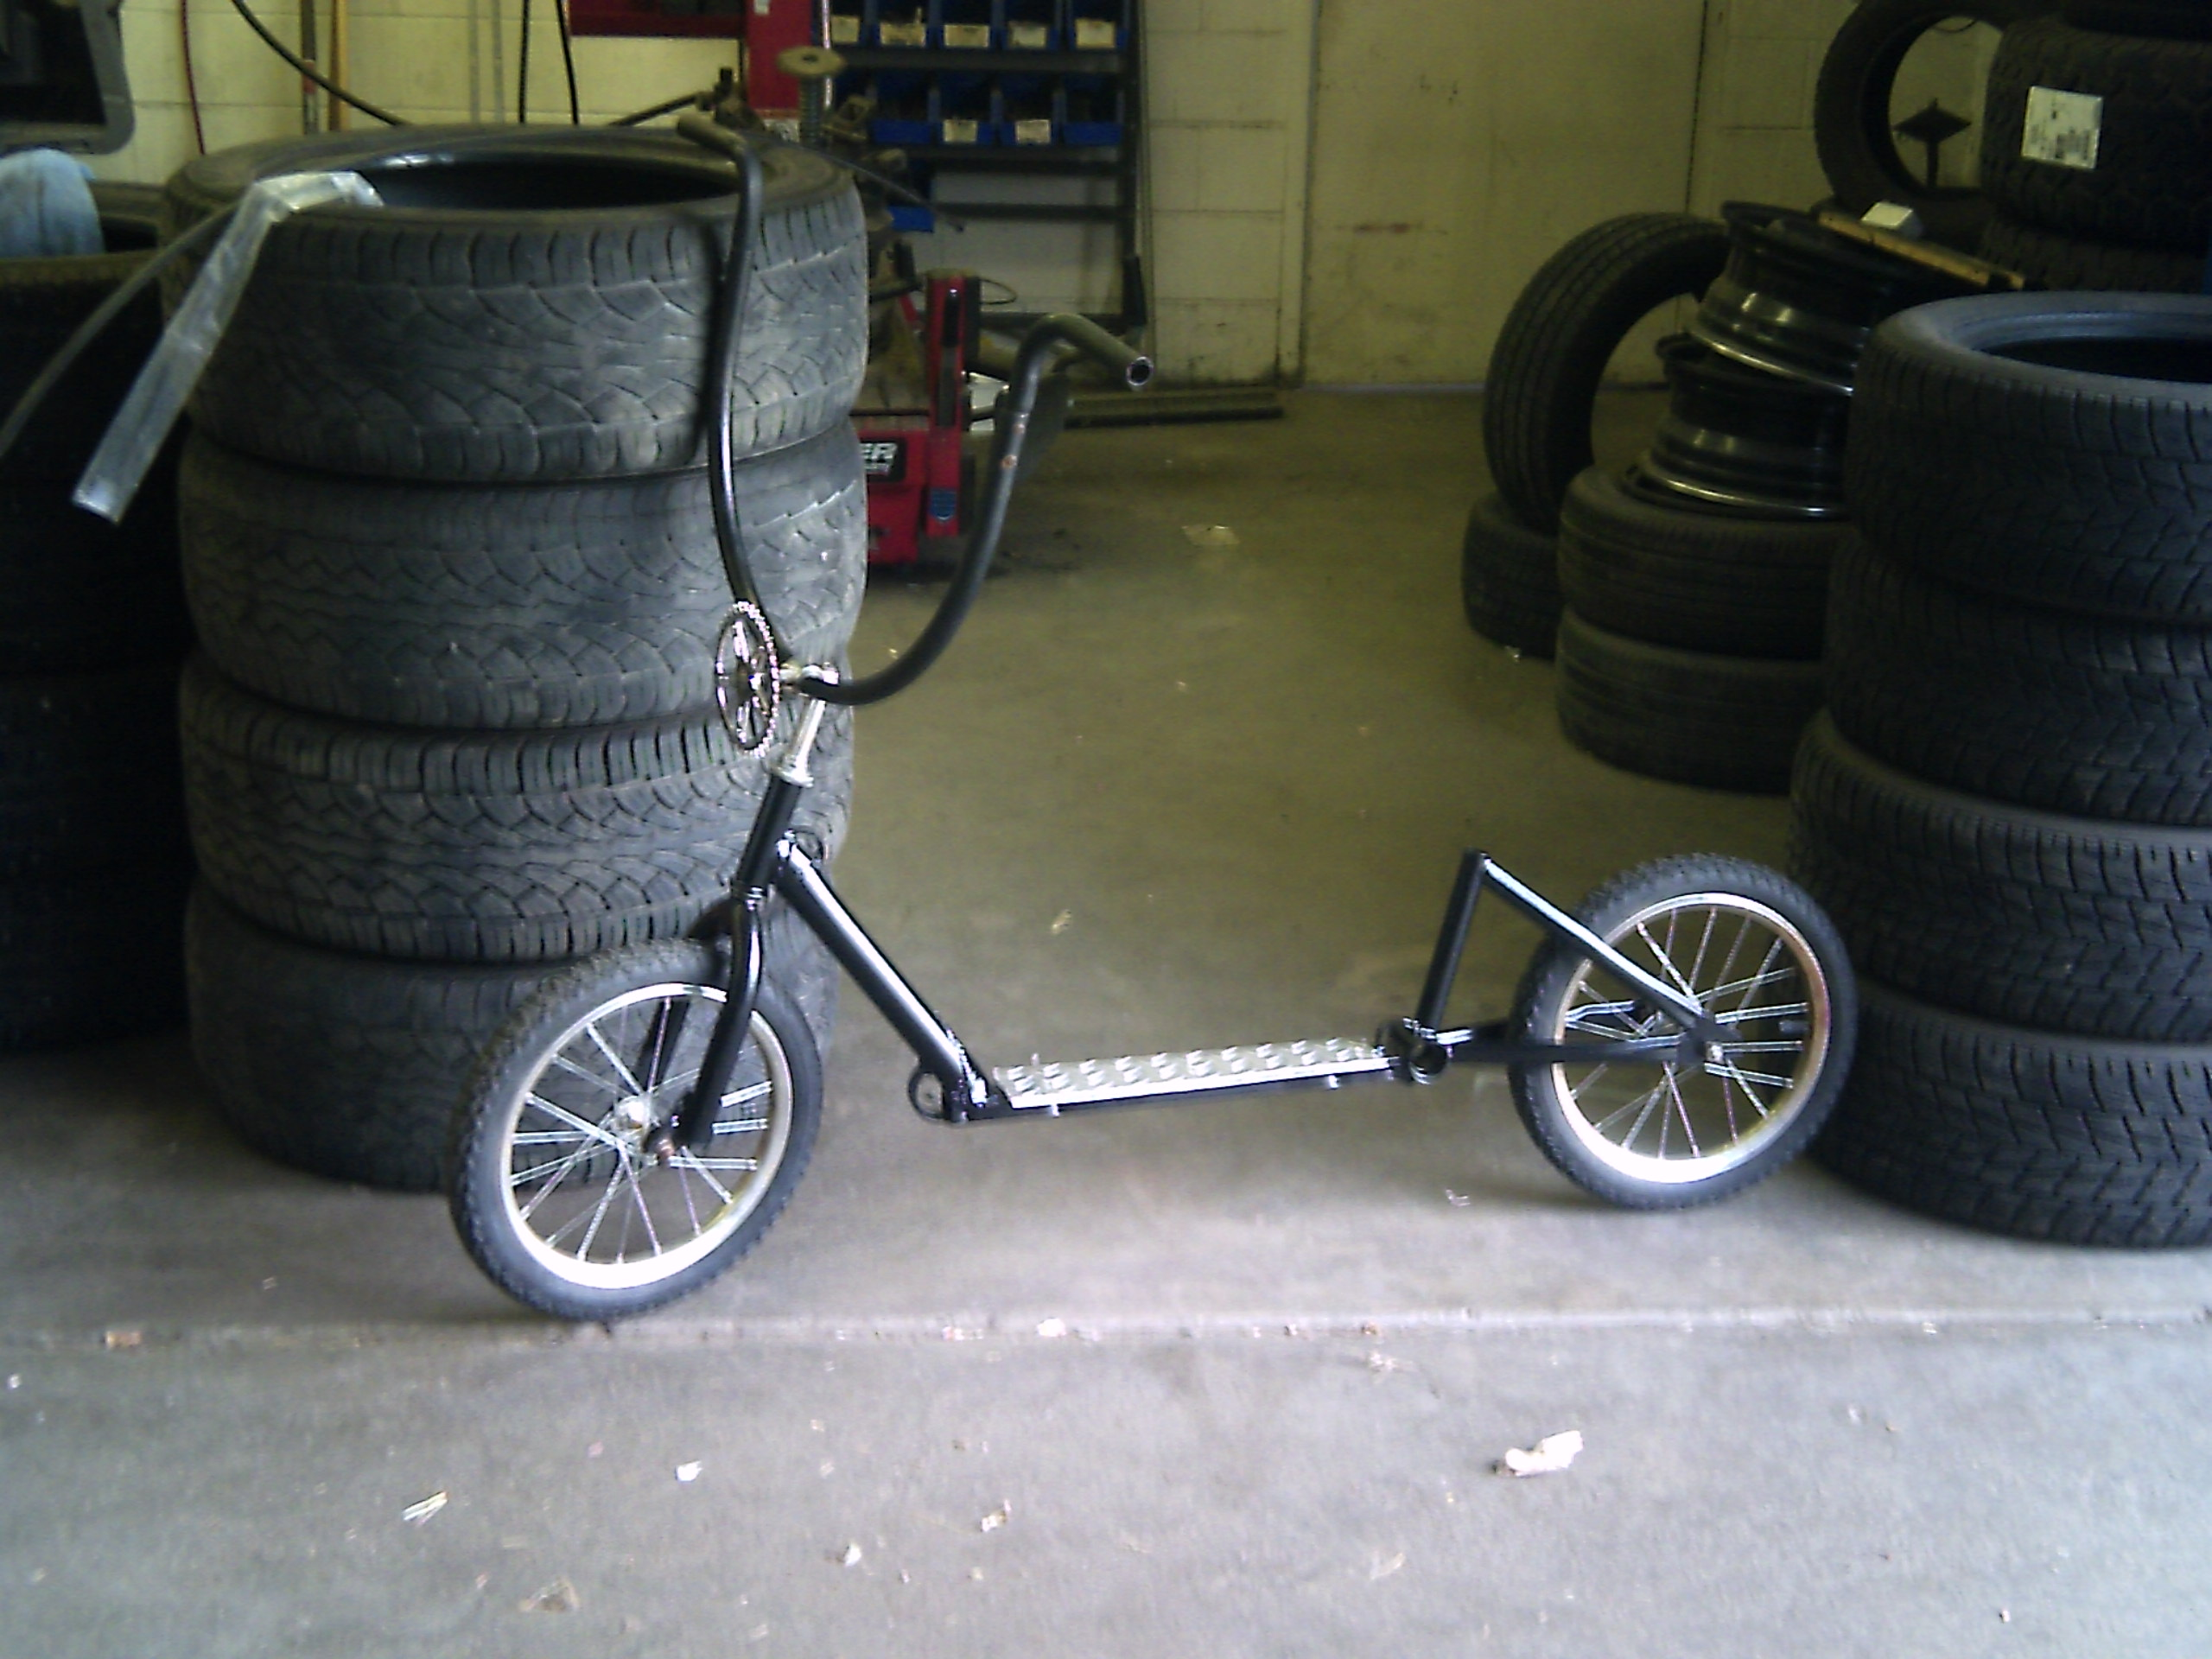 Picture of Push Scooter From an Old Bicycle and Salvaged Parts